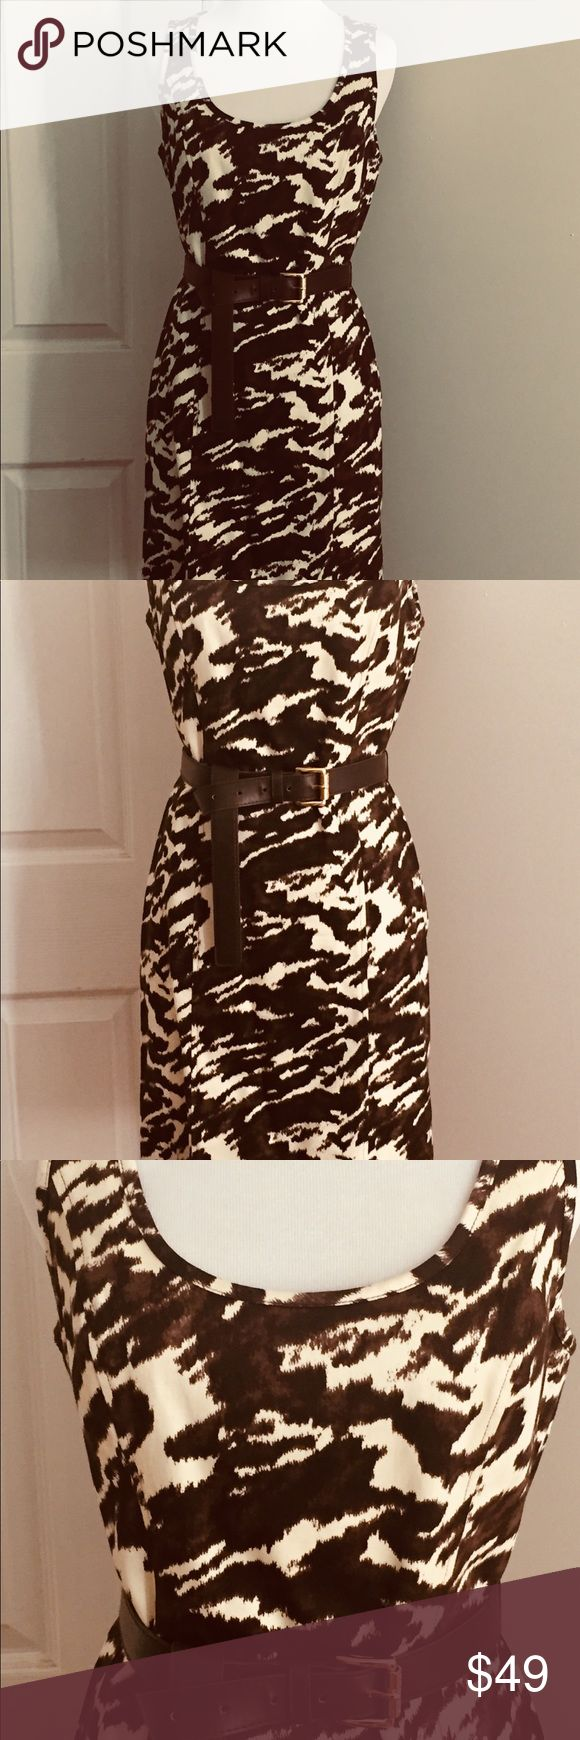 """MICHAEL Michael Kors Dress MiCHAEL Michael Kors stunning animal print dress. Inject a hint of the exotic, into your going out wardrobe. Full length gold metal zipper down the back. It has a cut out top, making it look sexy yet classy. Really nice, form fitting flattering knee length lightly worn dress. Very good condition!! Cream& brown 36""""inches from shoulder to hem. SMOKE FREE AND PET FREE HOME. MICHAEL Michael Kors Dresses Midi"""